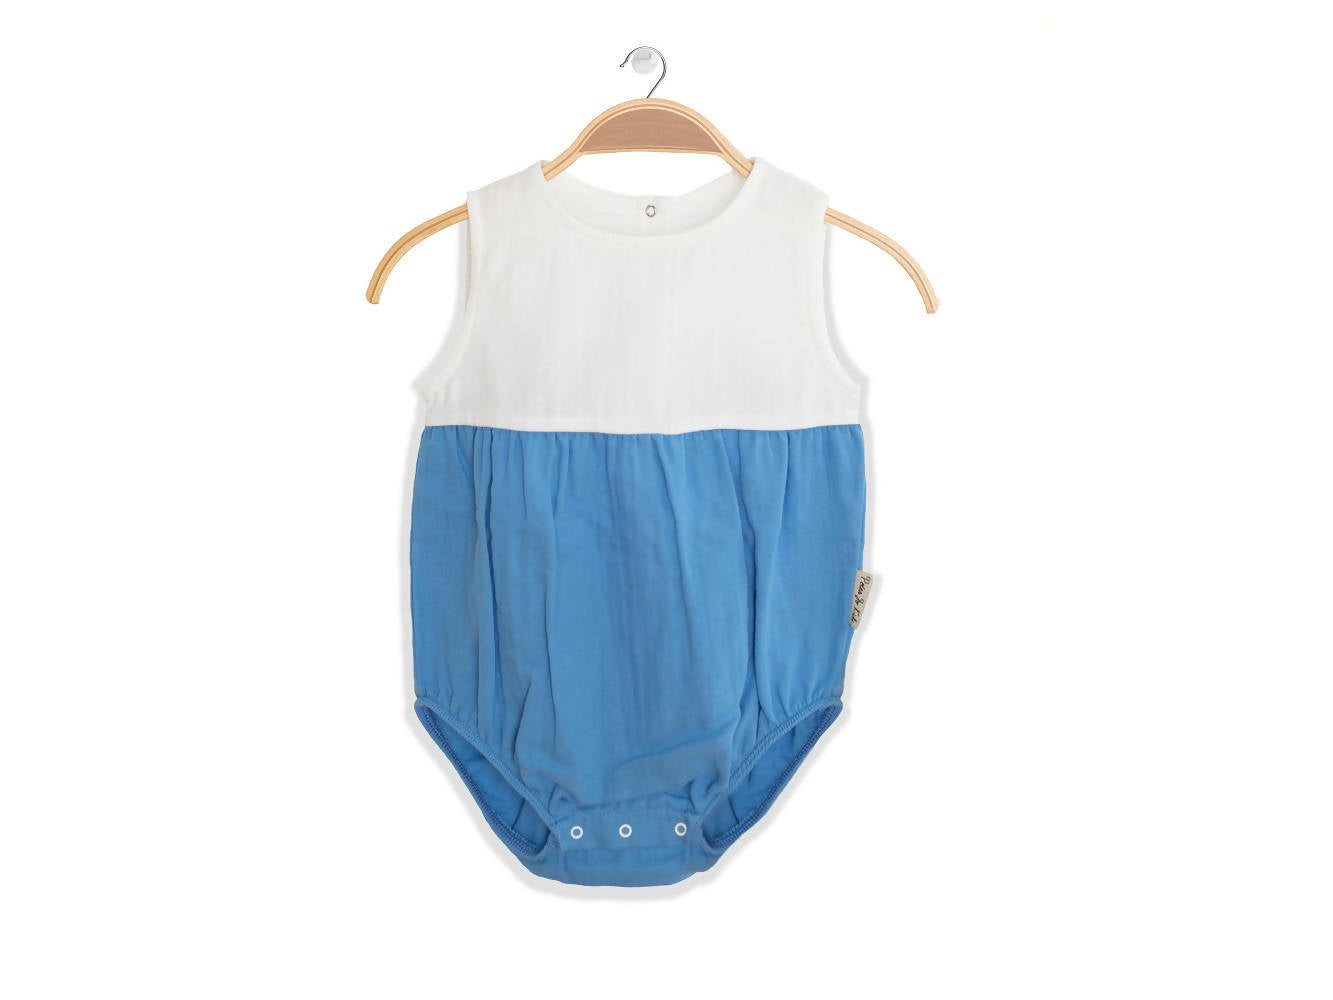 Peter Jo Kids Organic Onesie Lullaby blue made of organic muslin cotton